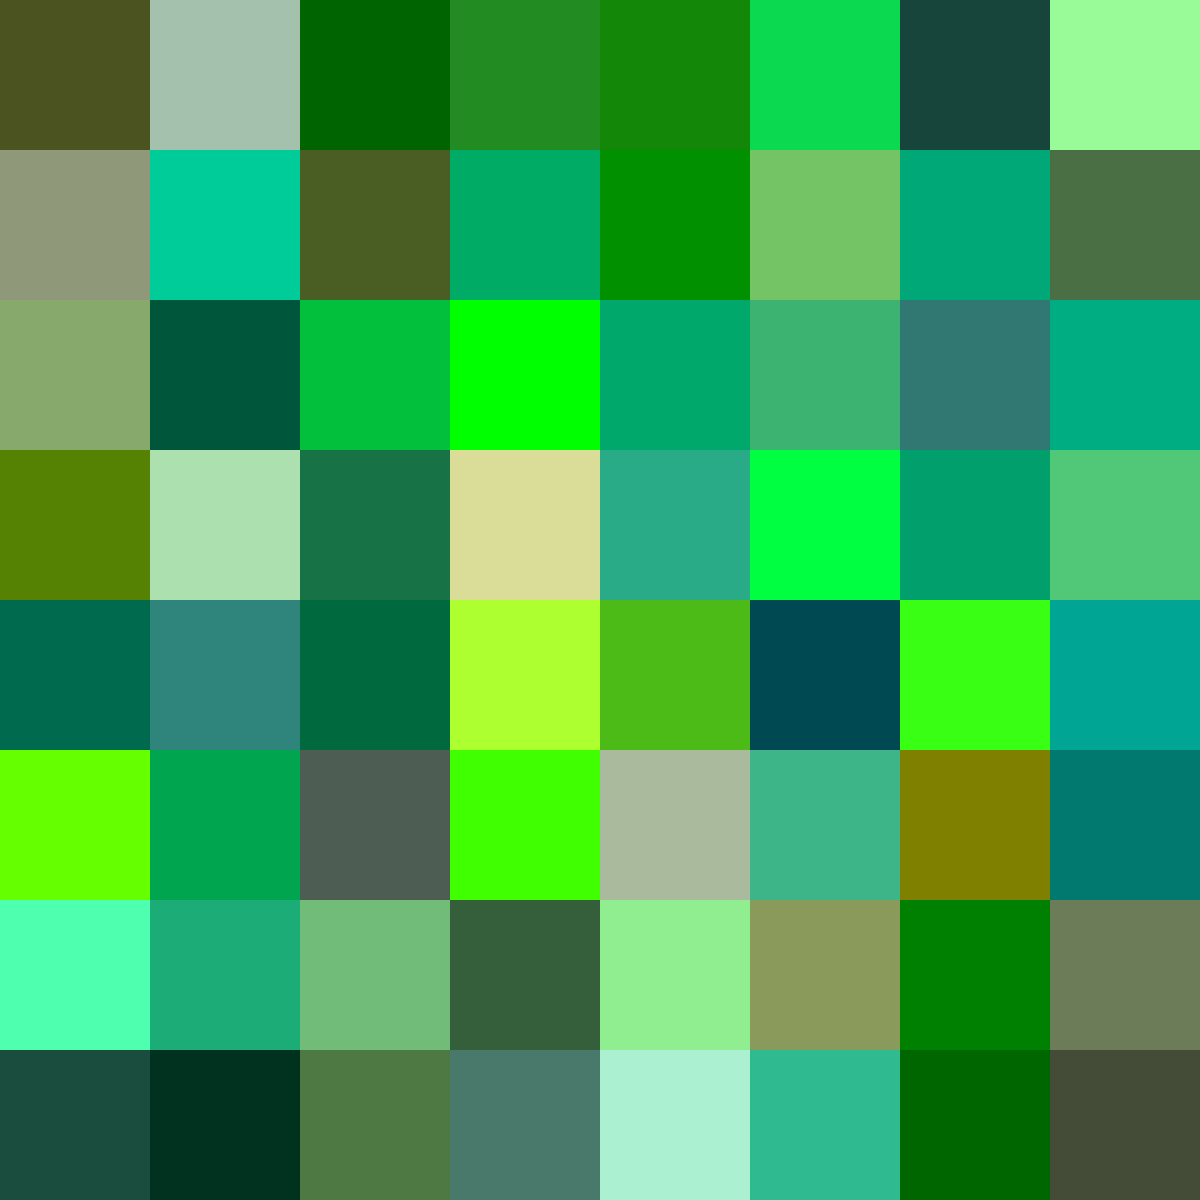 Shades Of Green Hex Rgb Cmyk Color Codes